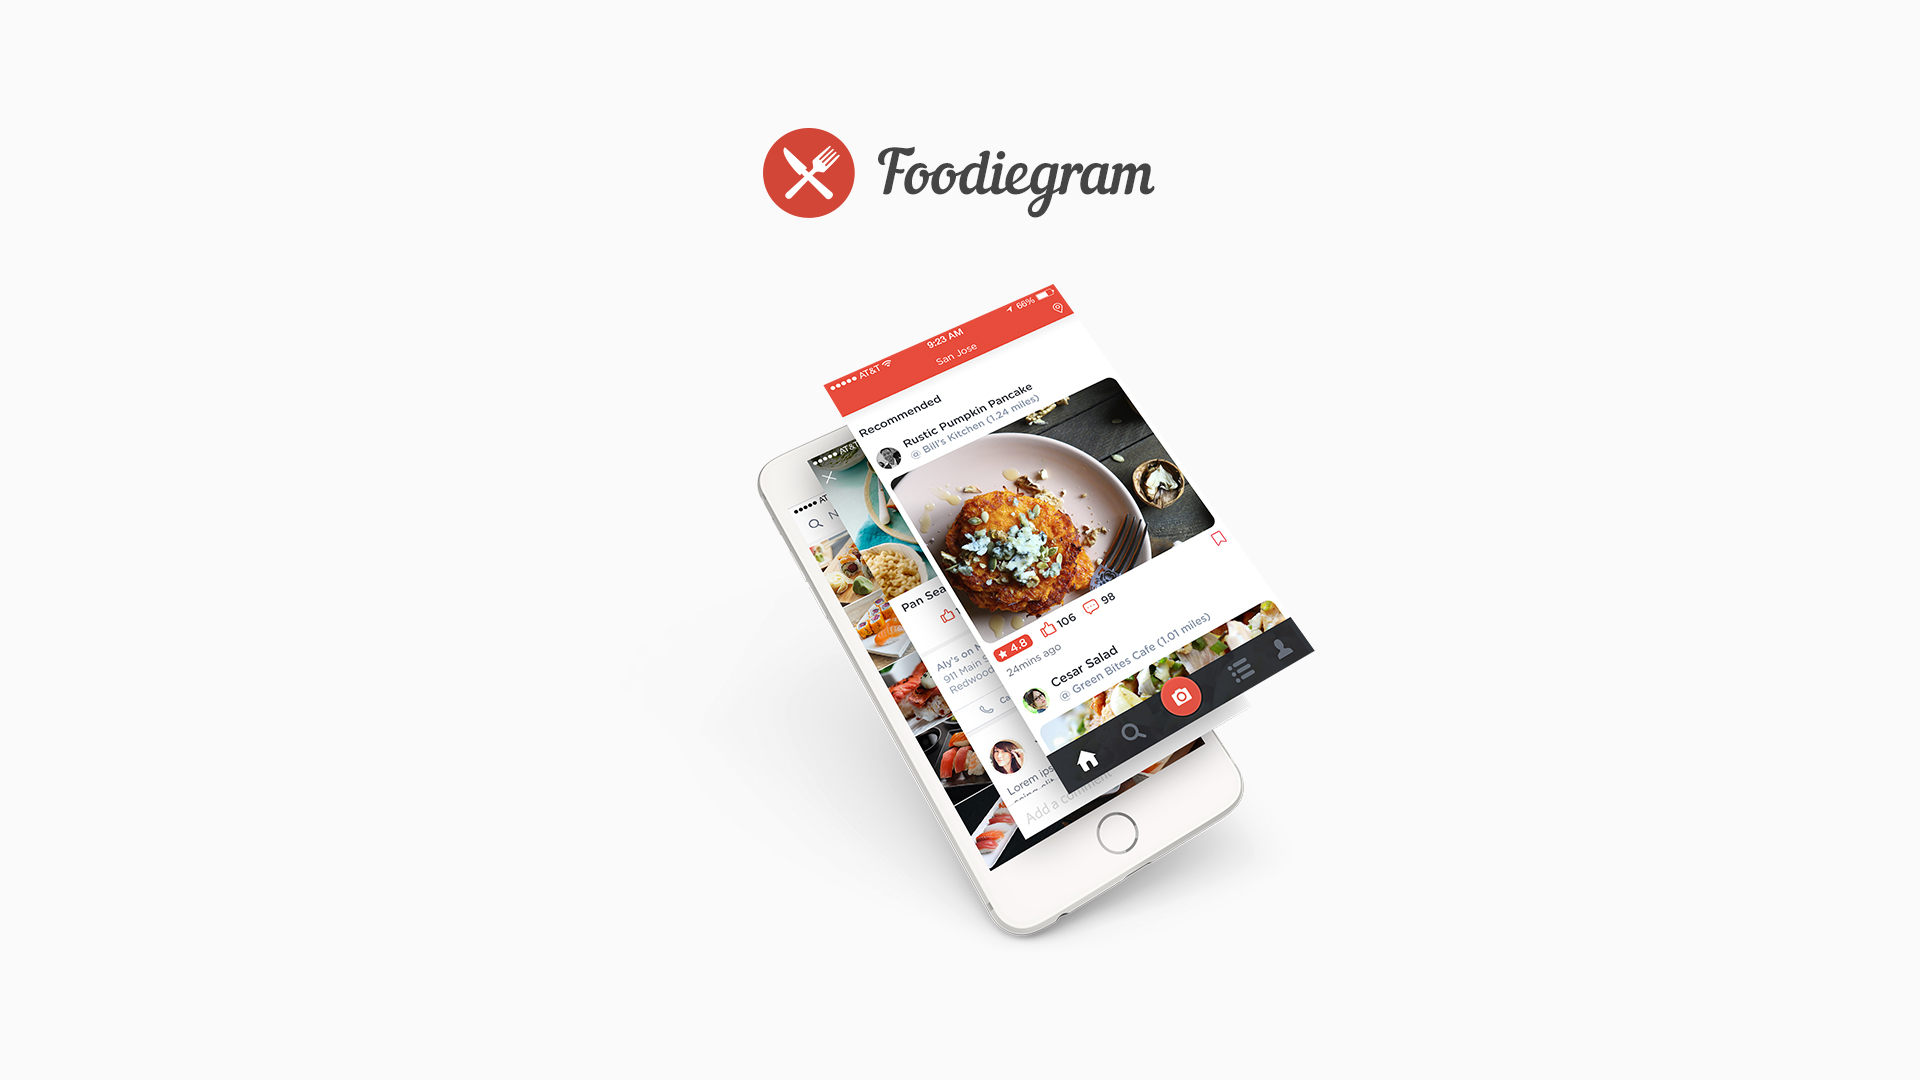 Foodiegram